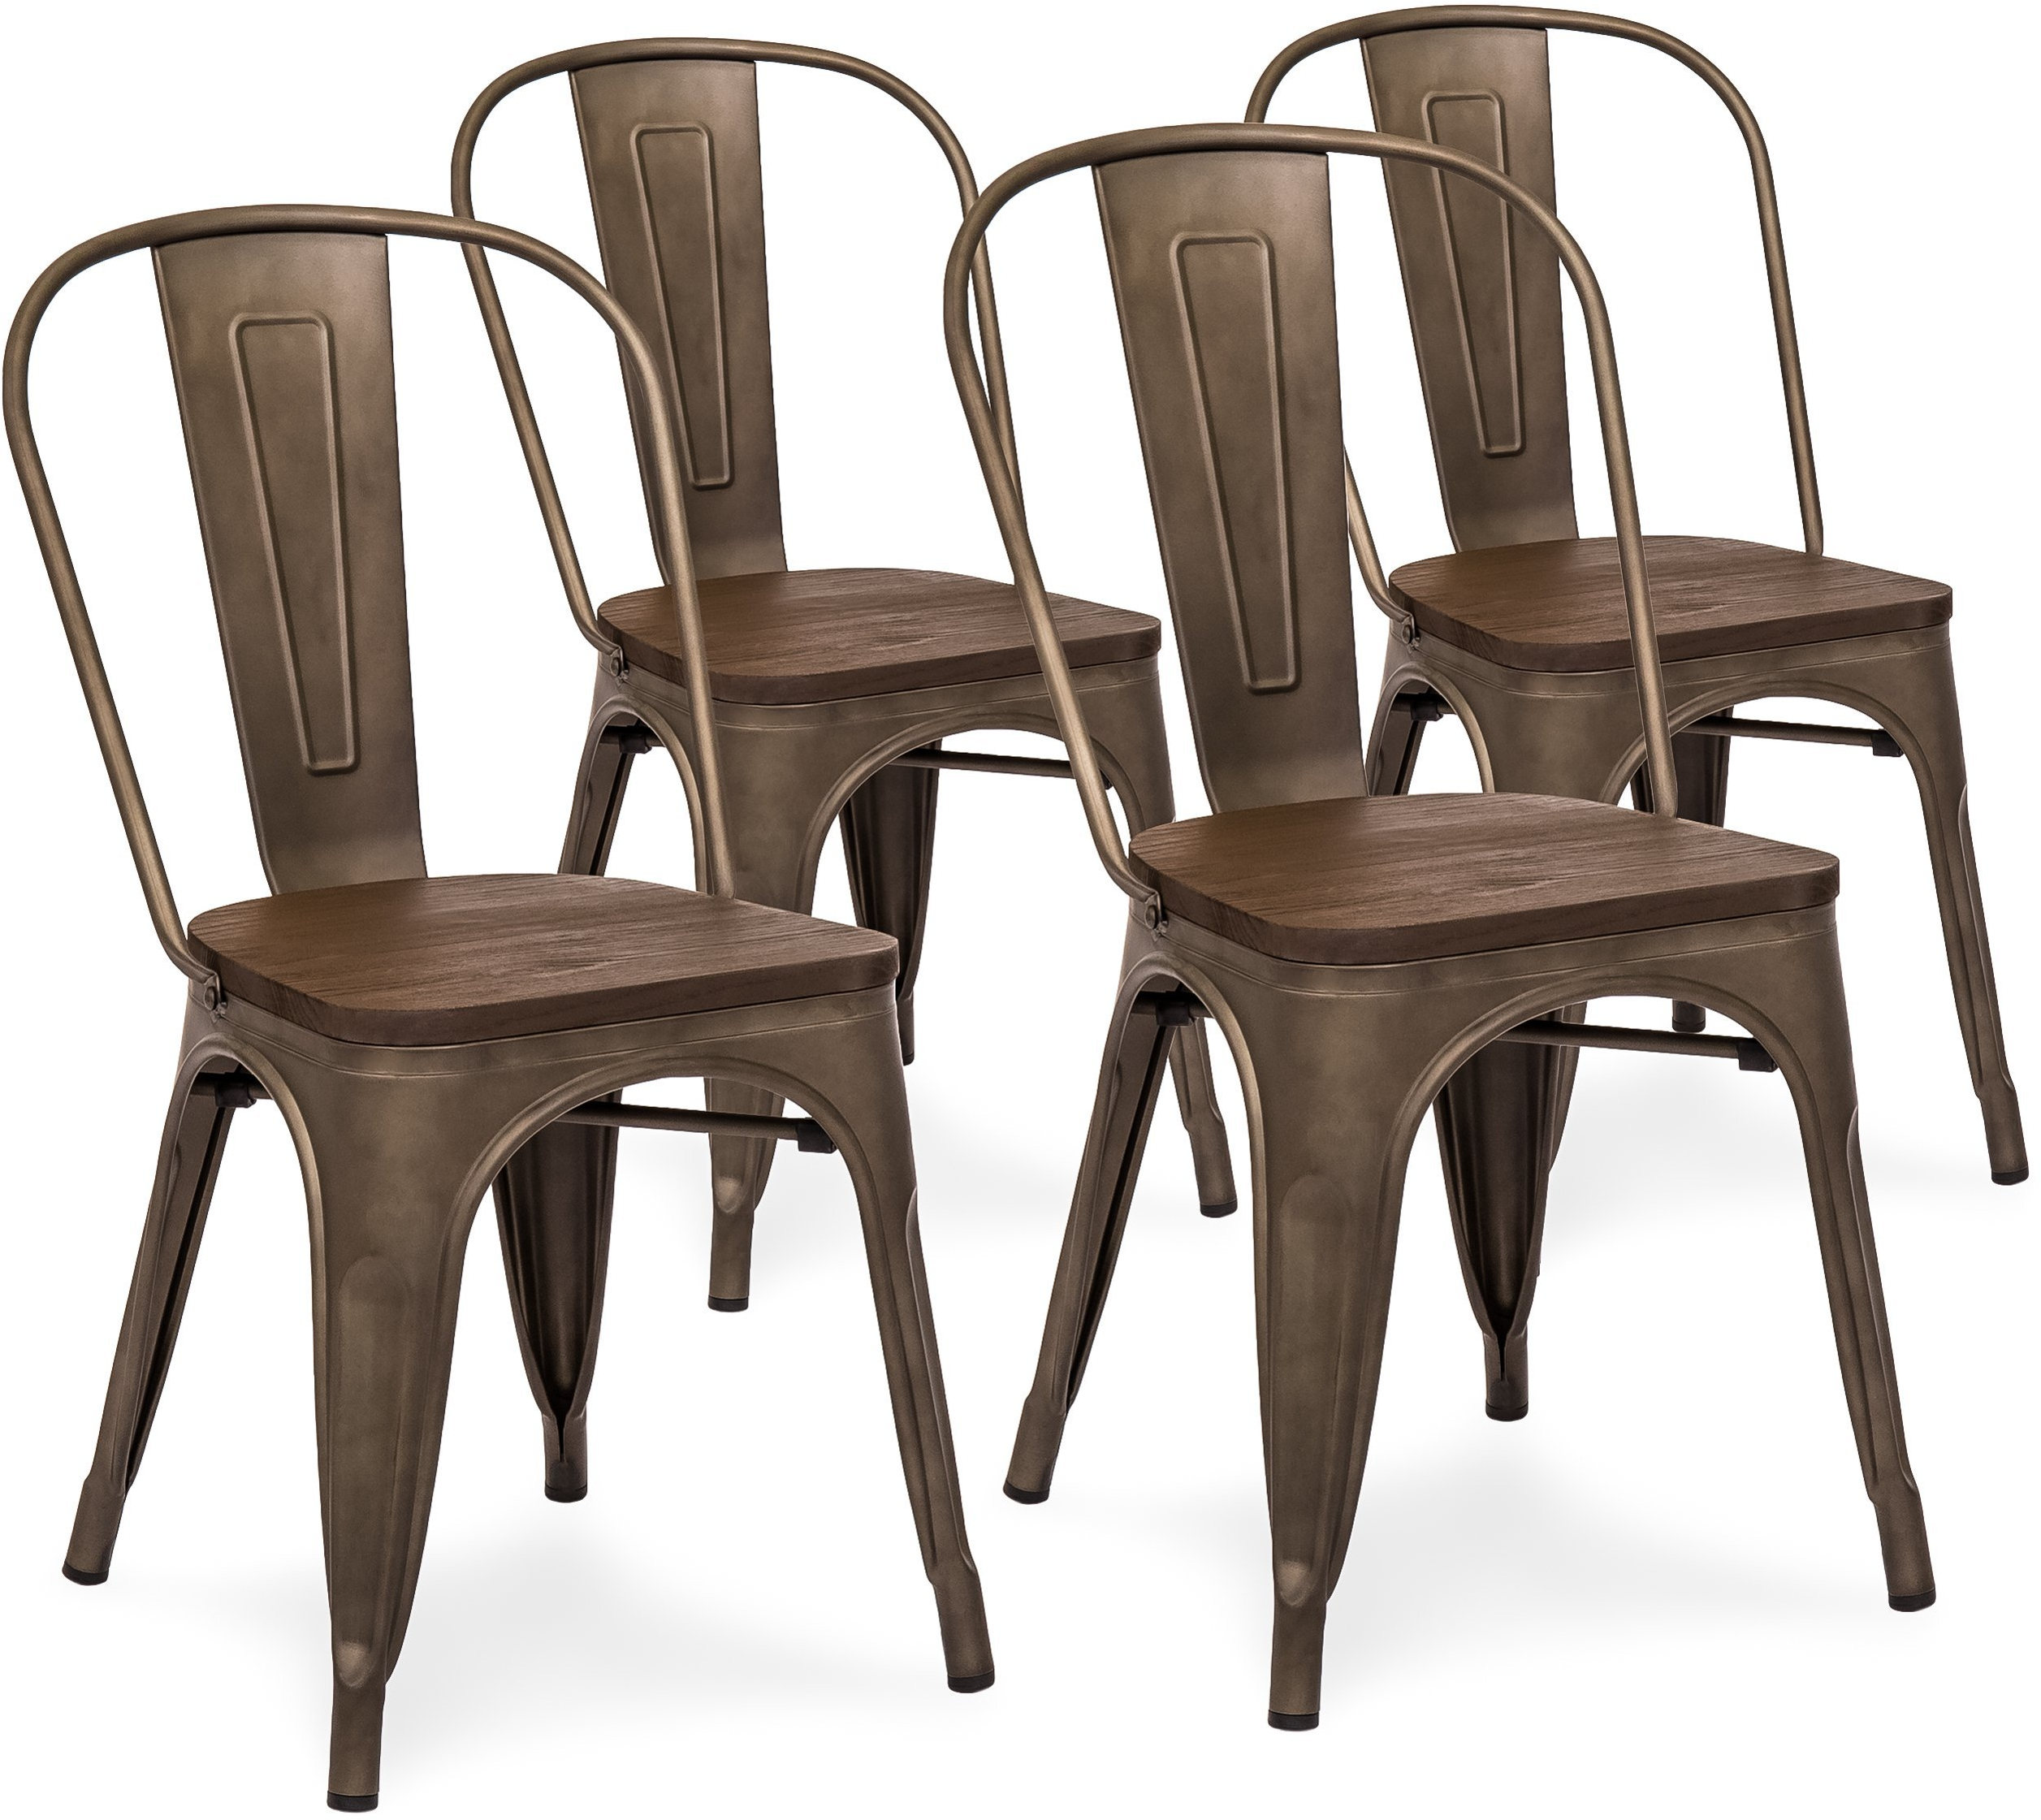 Details about set of 4 industrial distressed metal dining chairs w wood seat copper bronze